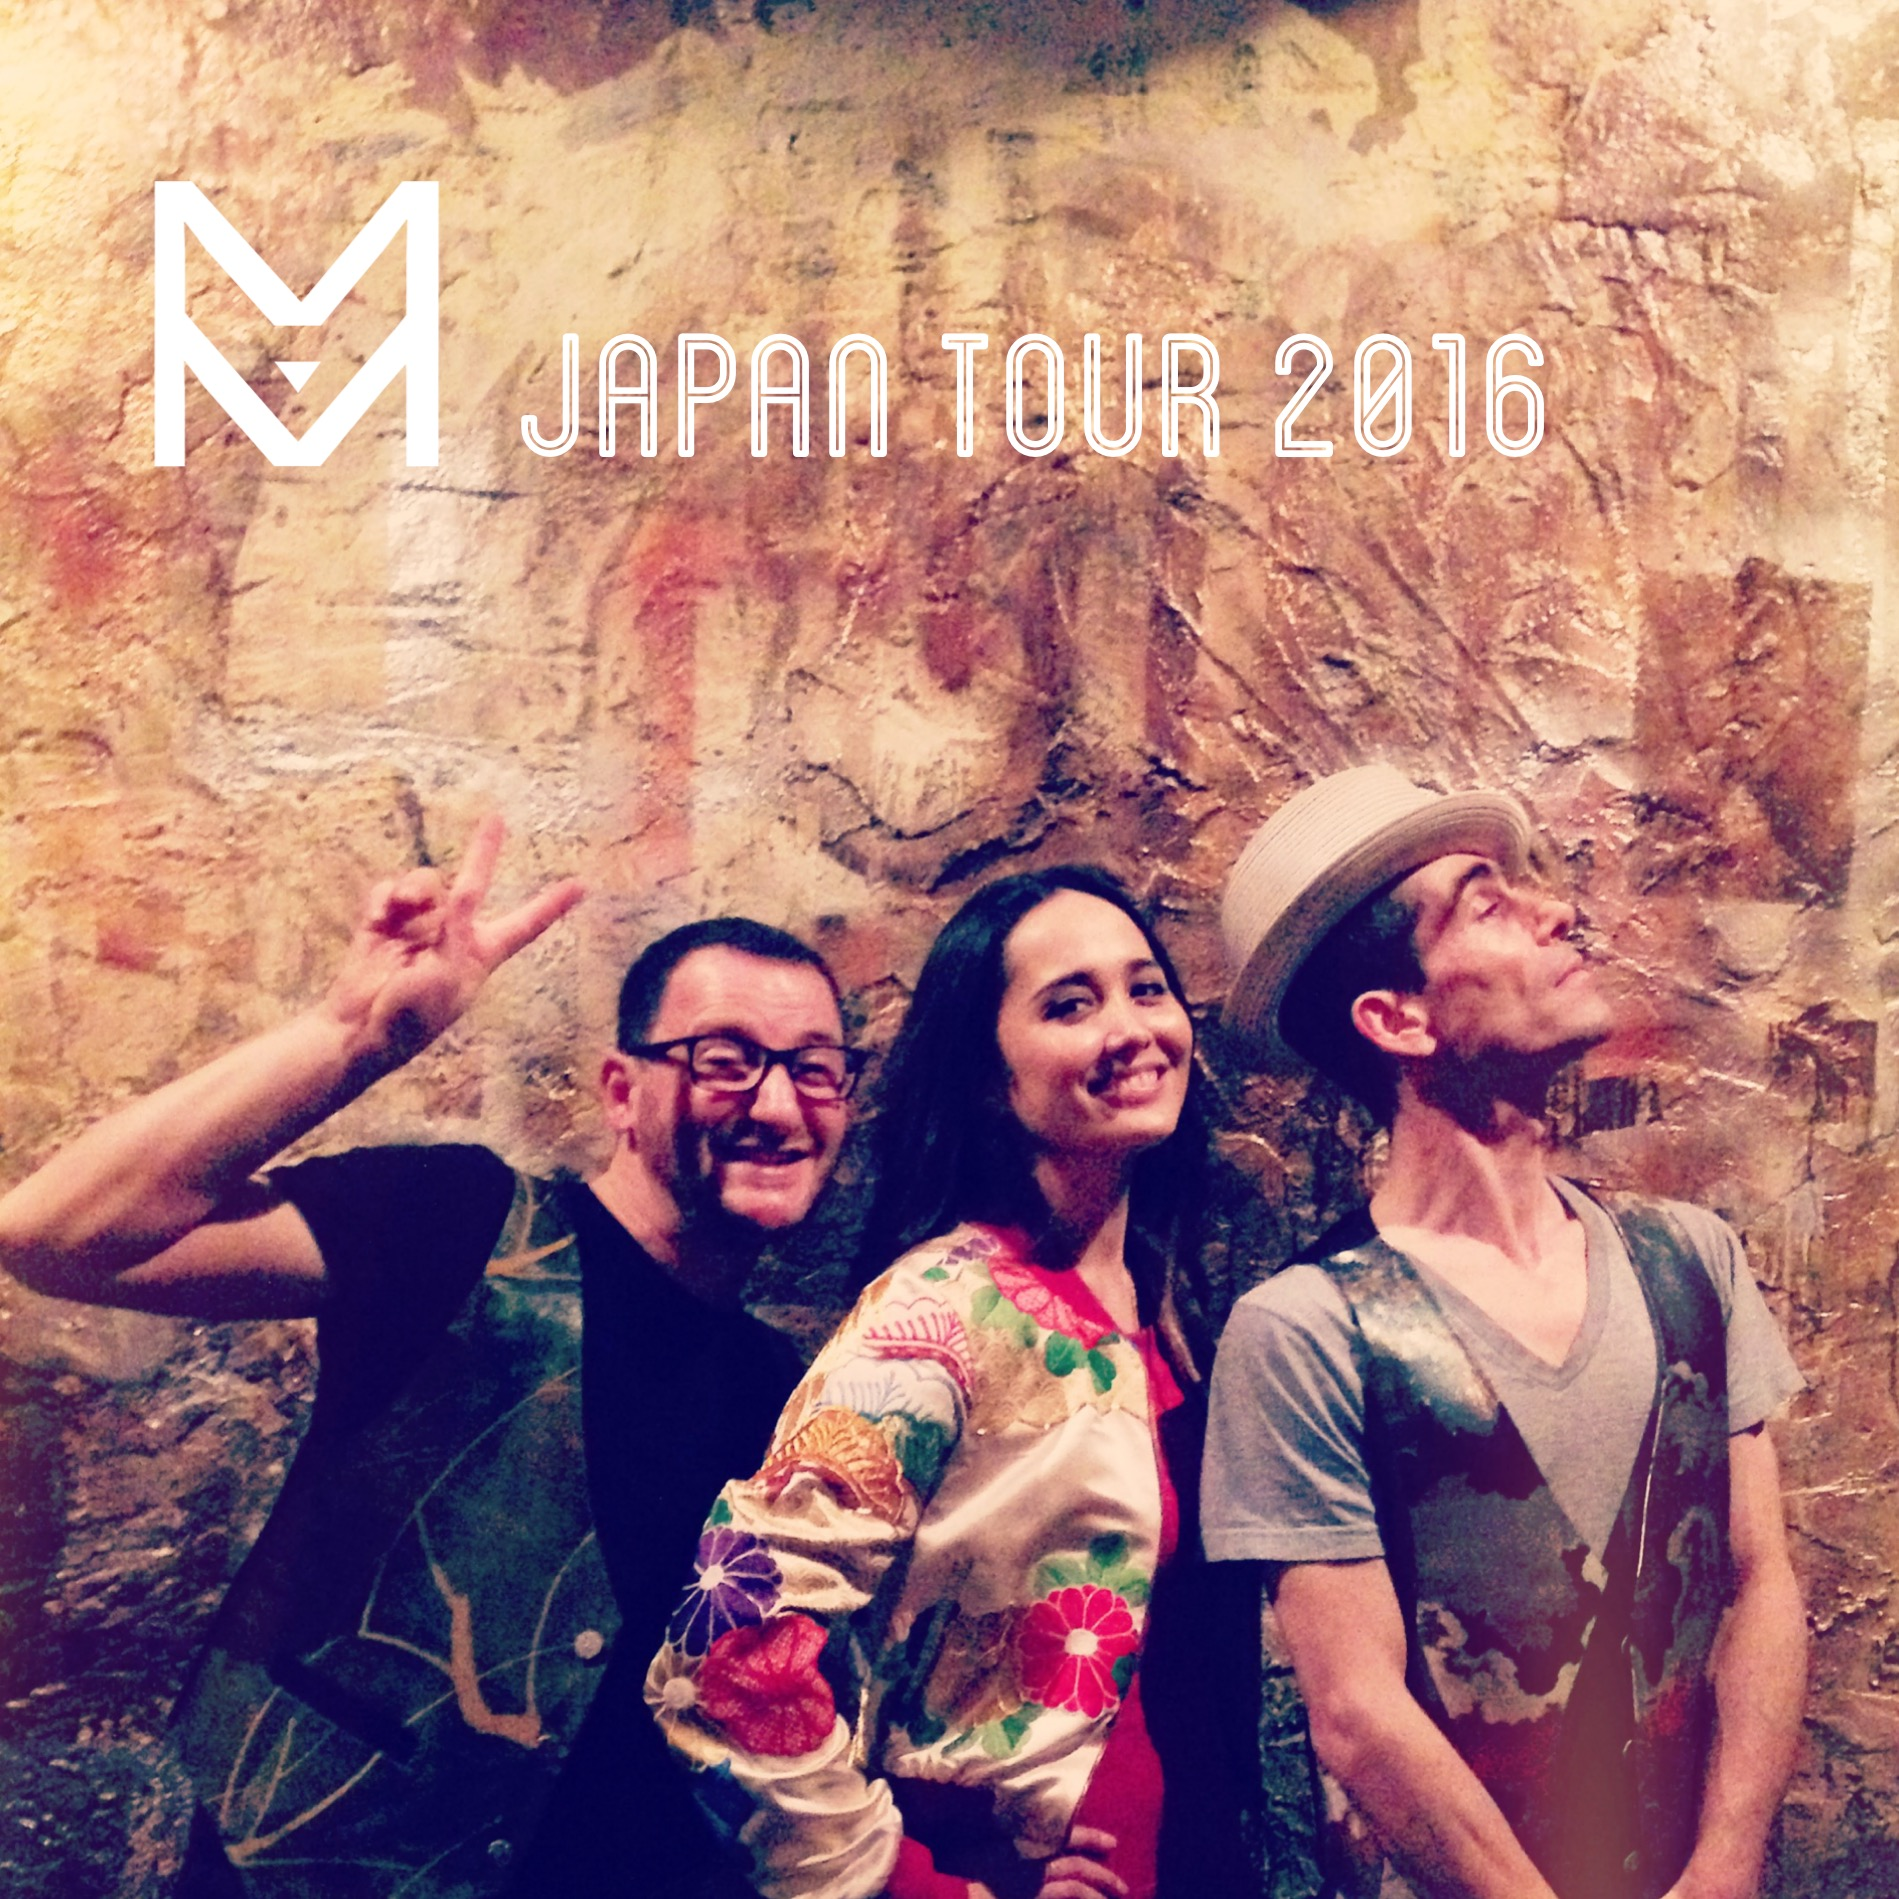 Japan trio tour 2016 @Kyoto